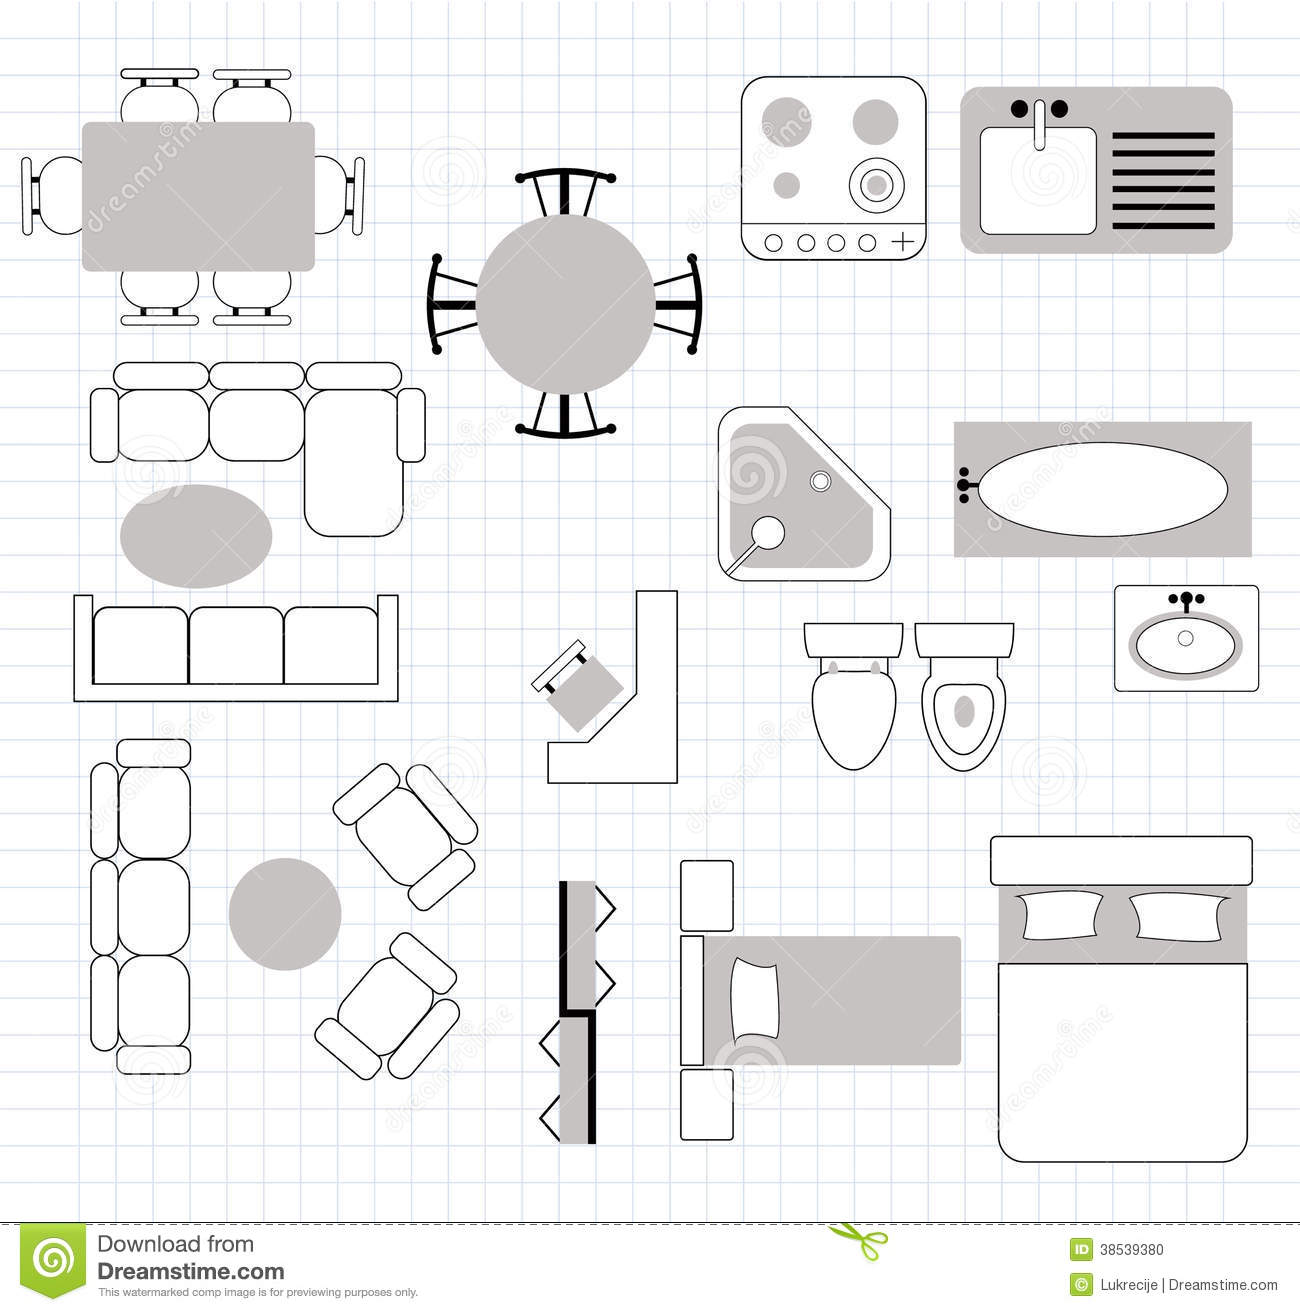 Clipart furniture floor plan clipground for Draw a floorplan to scale for free